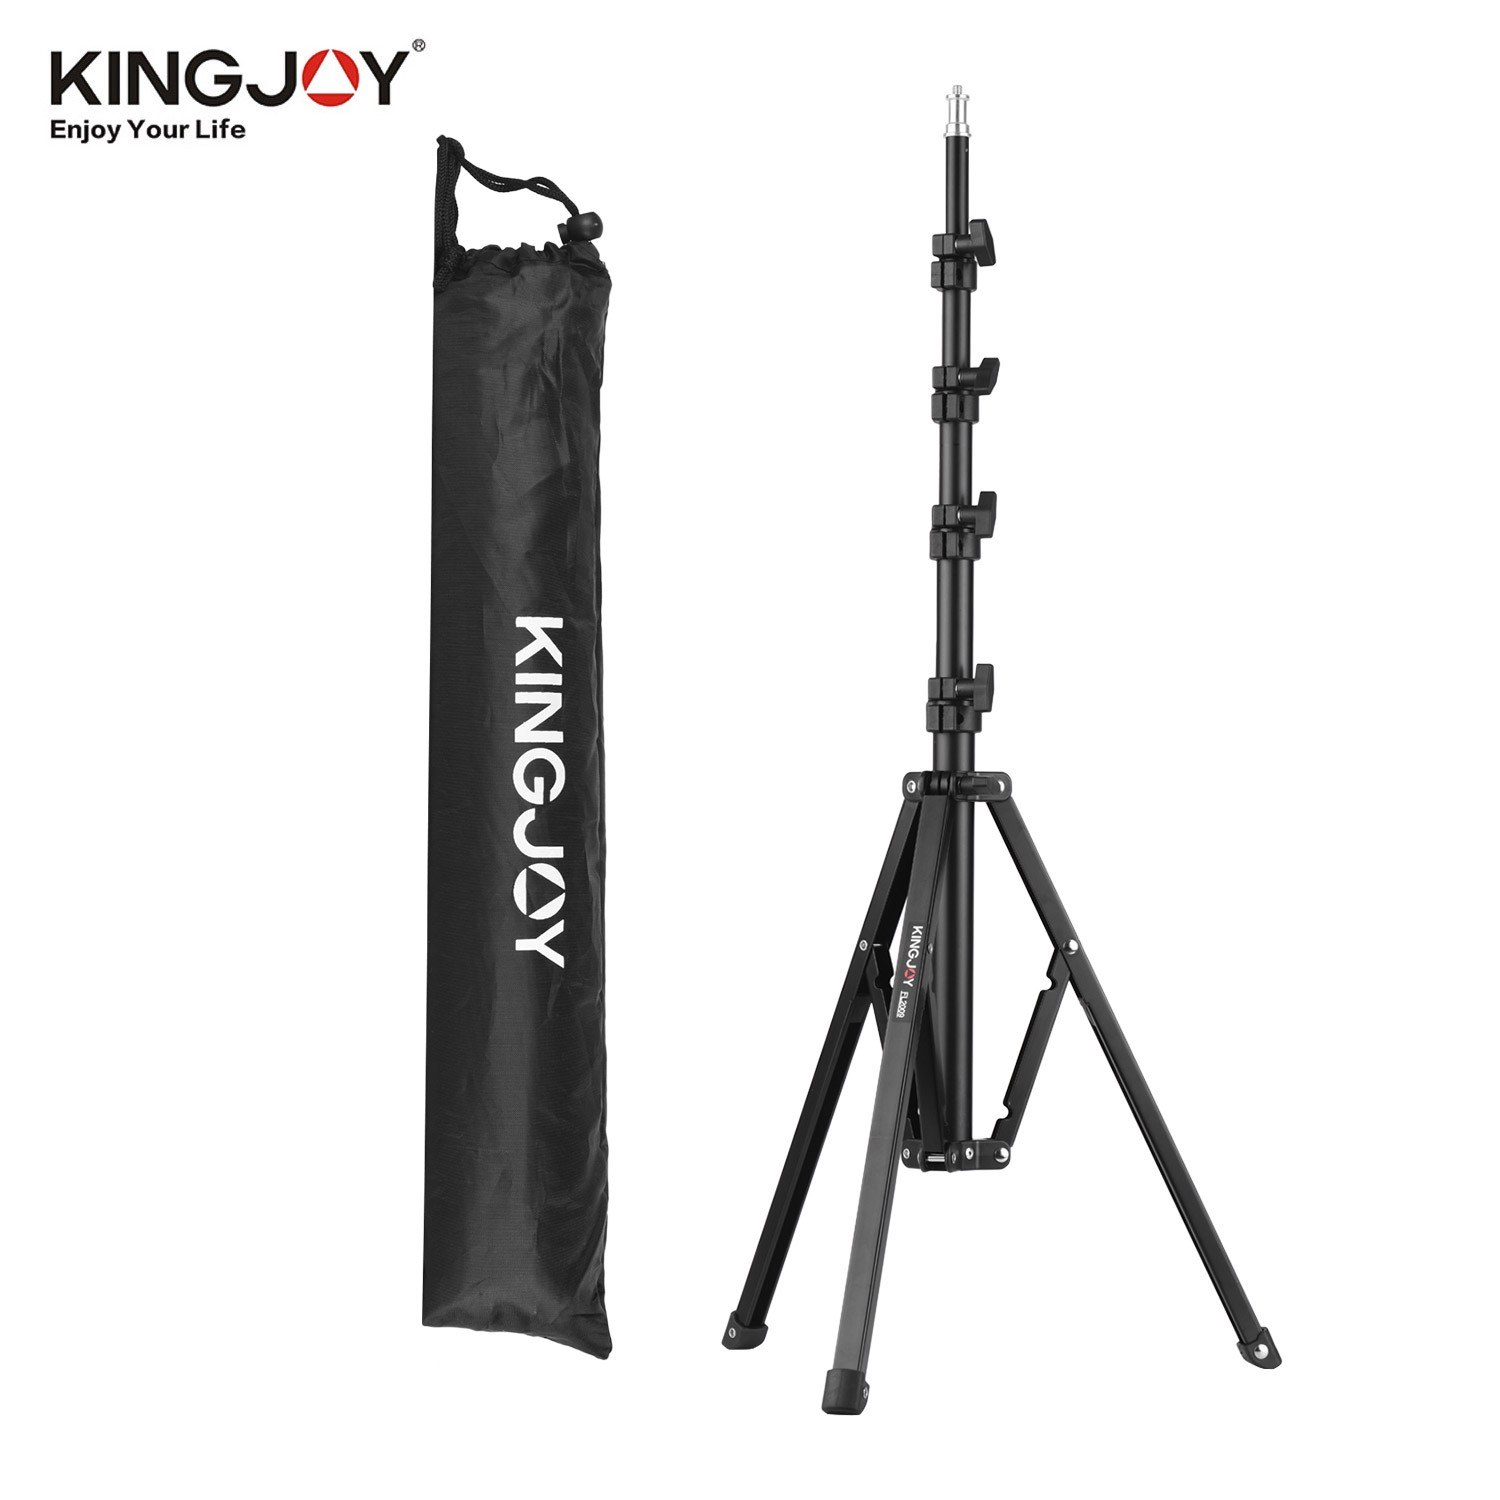 KINGJOY FL2009 Adjustable Metal Tripod Light Stand 10kg/22lbs Load Capacity 1/4 Inch Screw Max. Height 182cm/6ft with Carry Bag for Photography Studio Reflector Softbox LED Video Light Umbrella